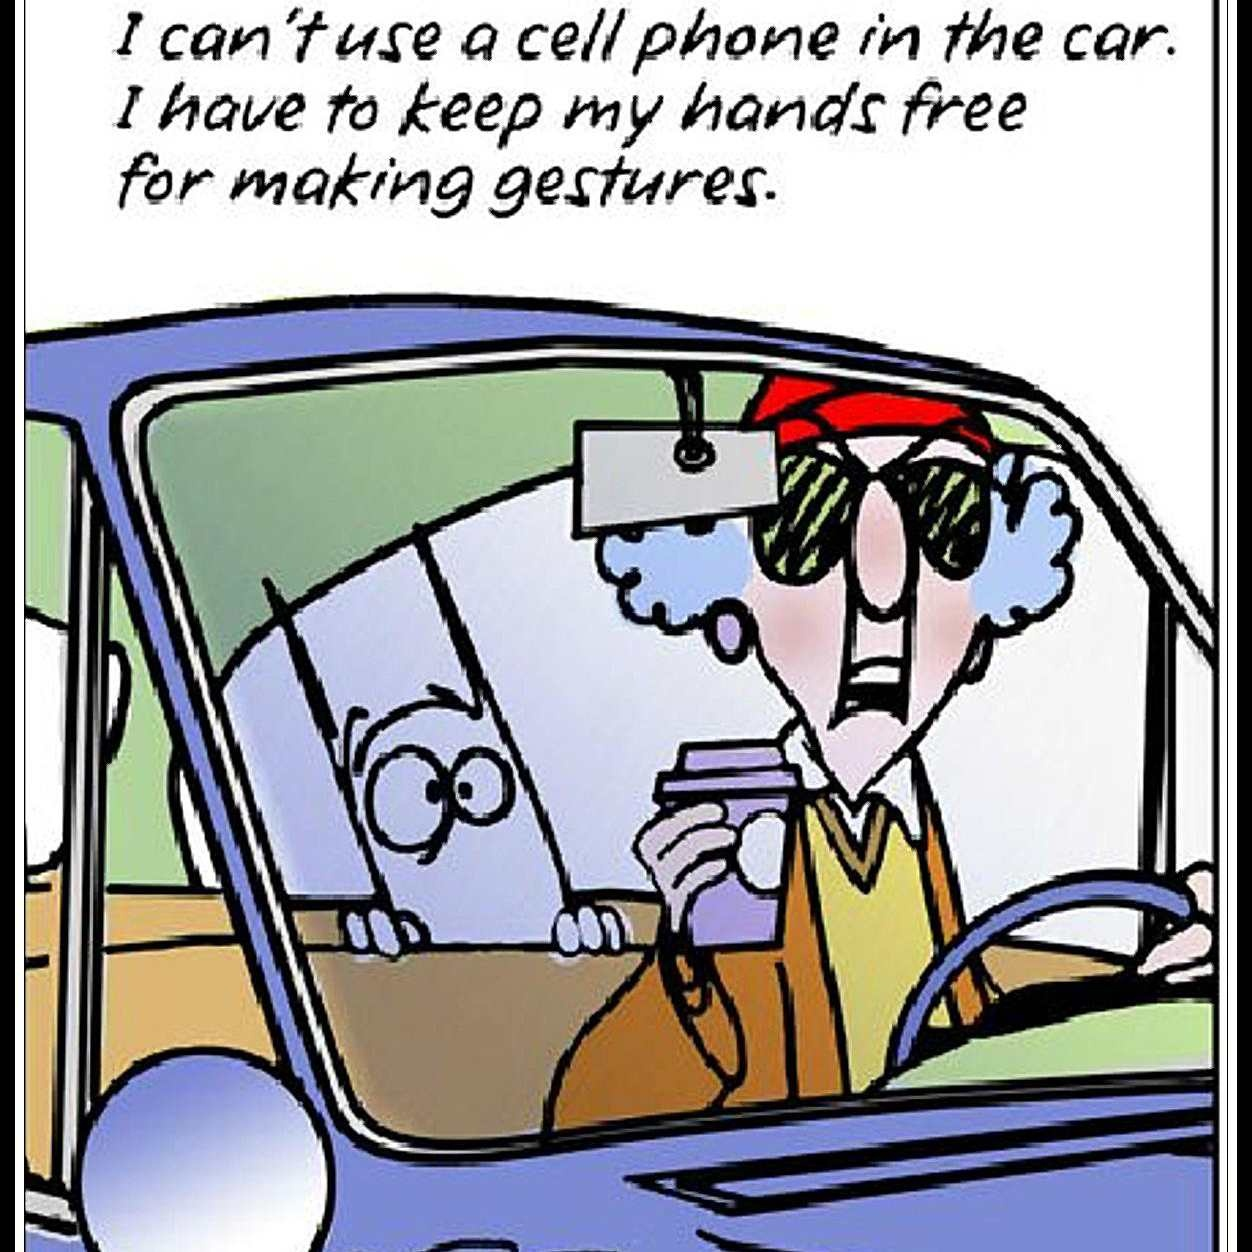 20 Funny And Snarky Maxine Cards For Any Occasion - Free Printable Maxine Cartoons